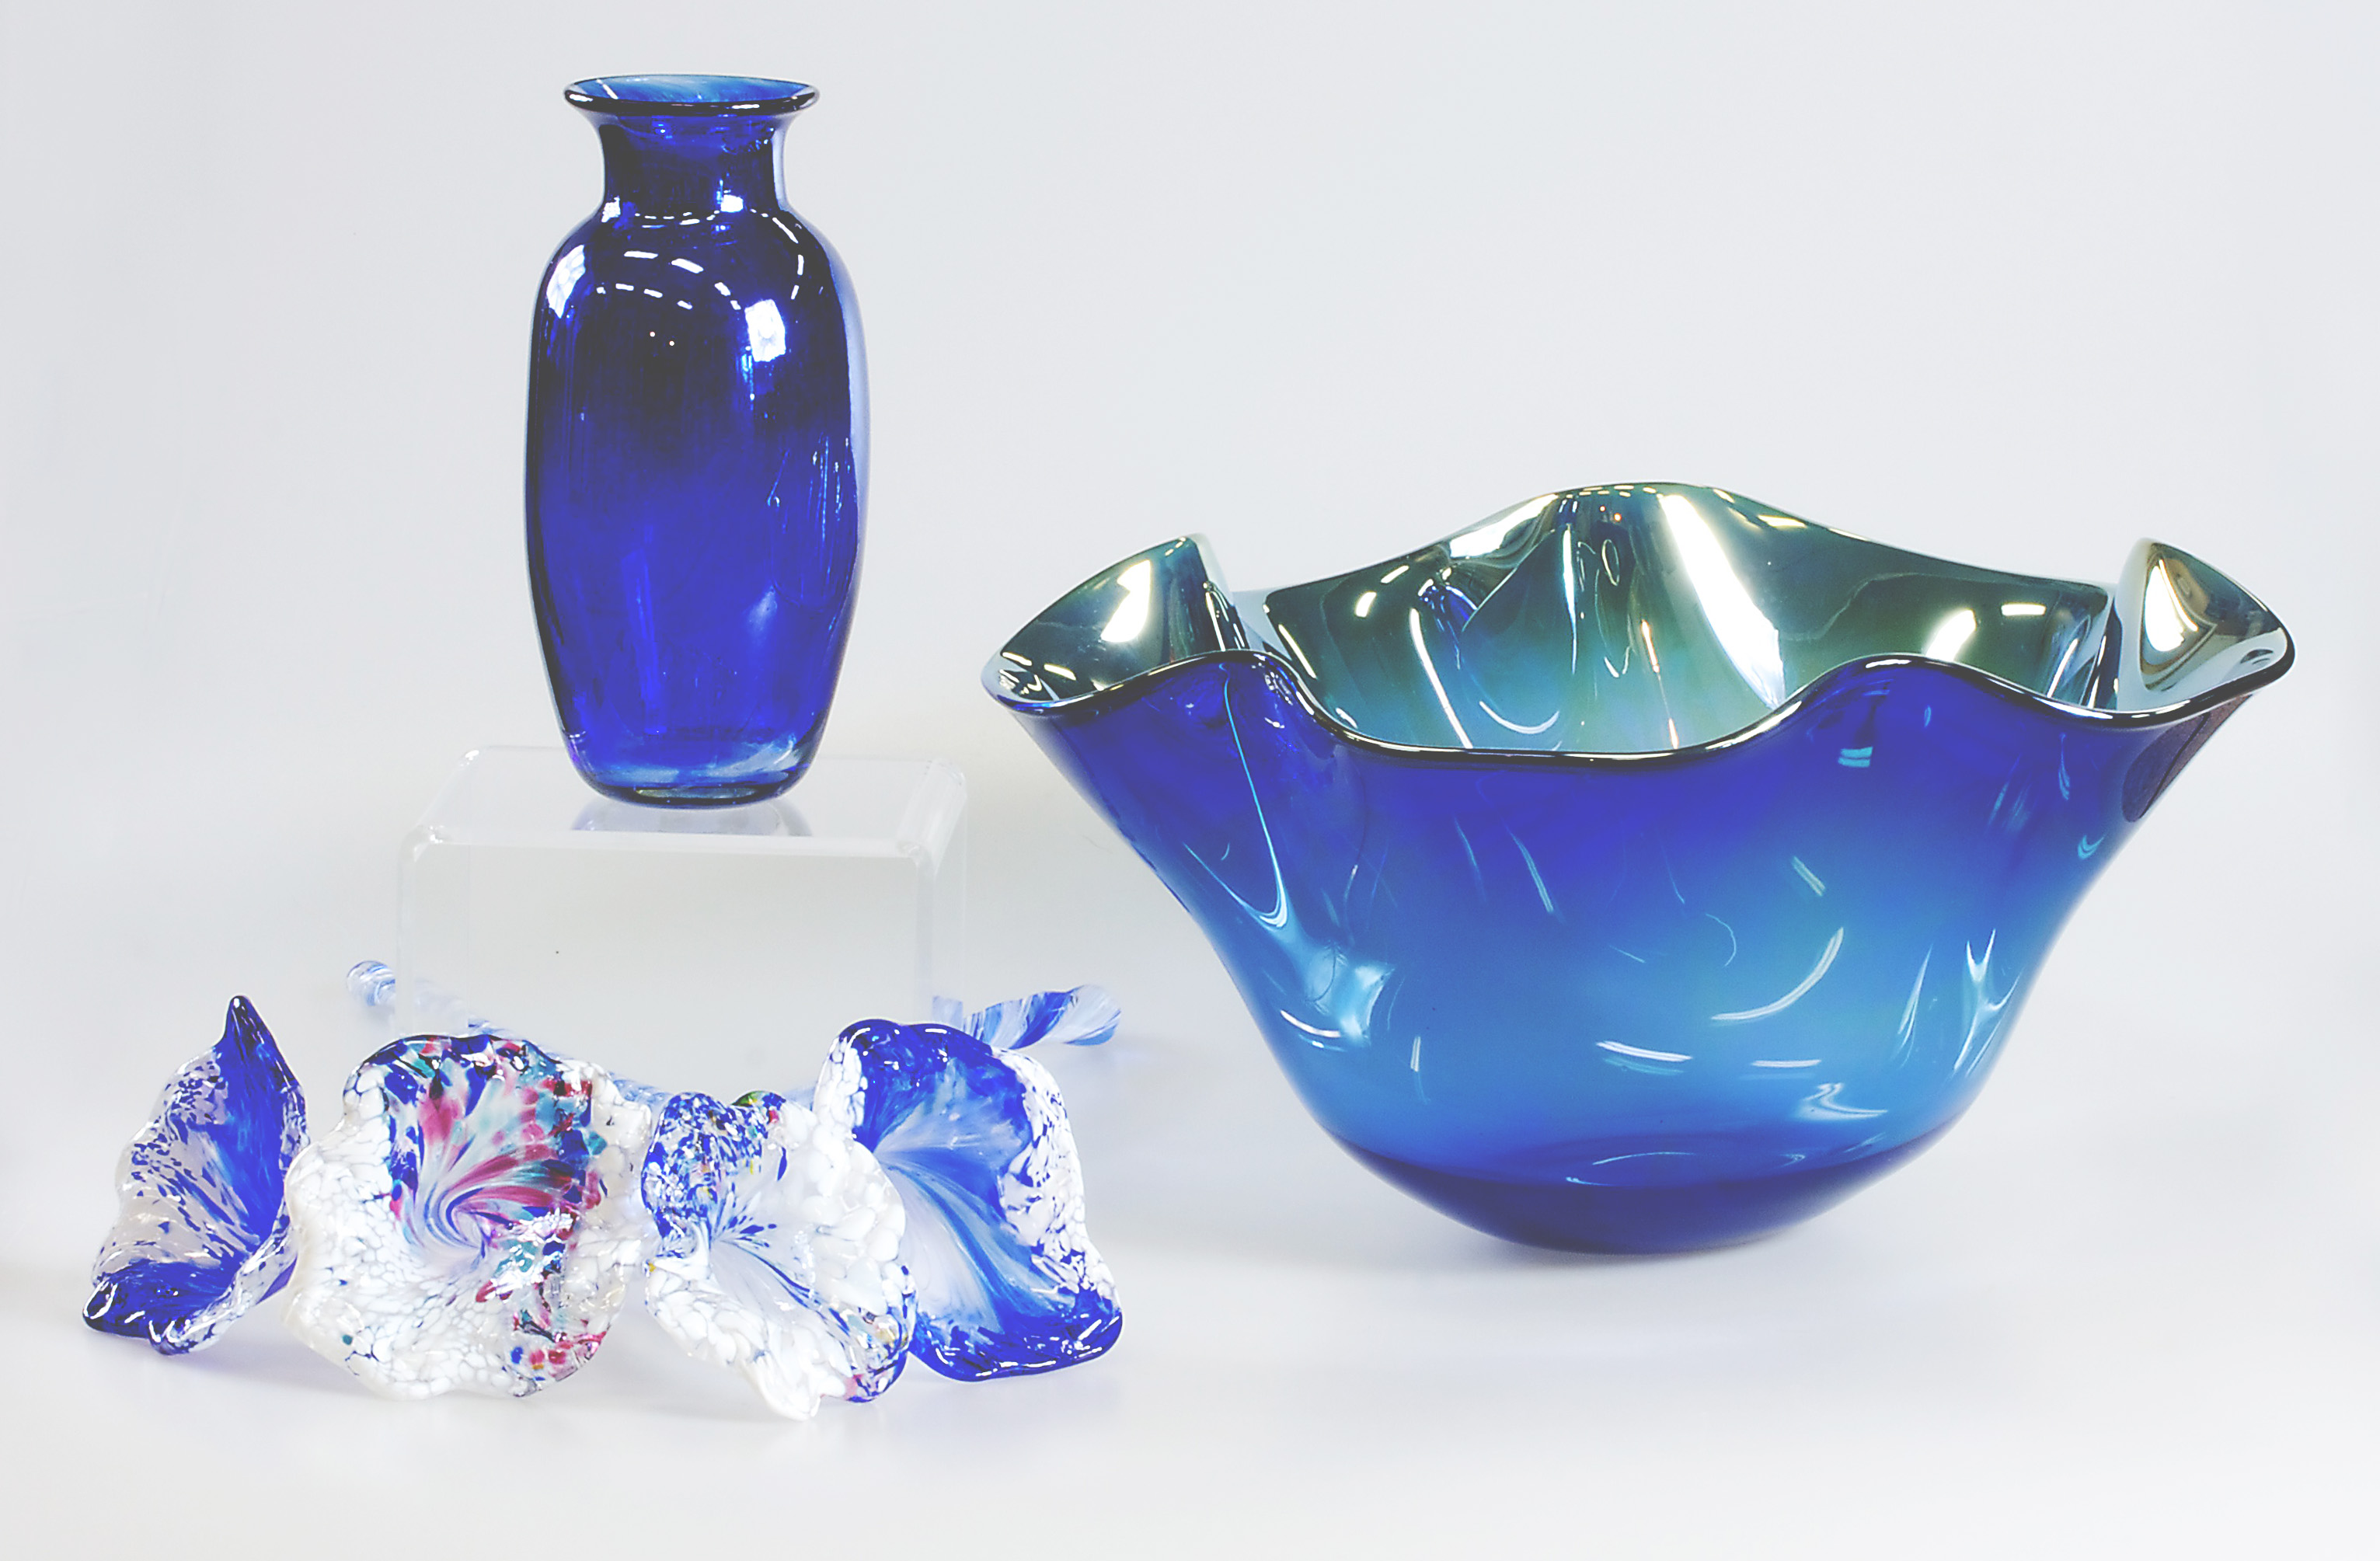 Handmade glass pieces at Inspired Fire Glass Studio & Gallery